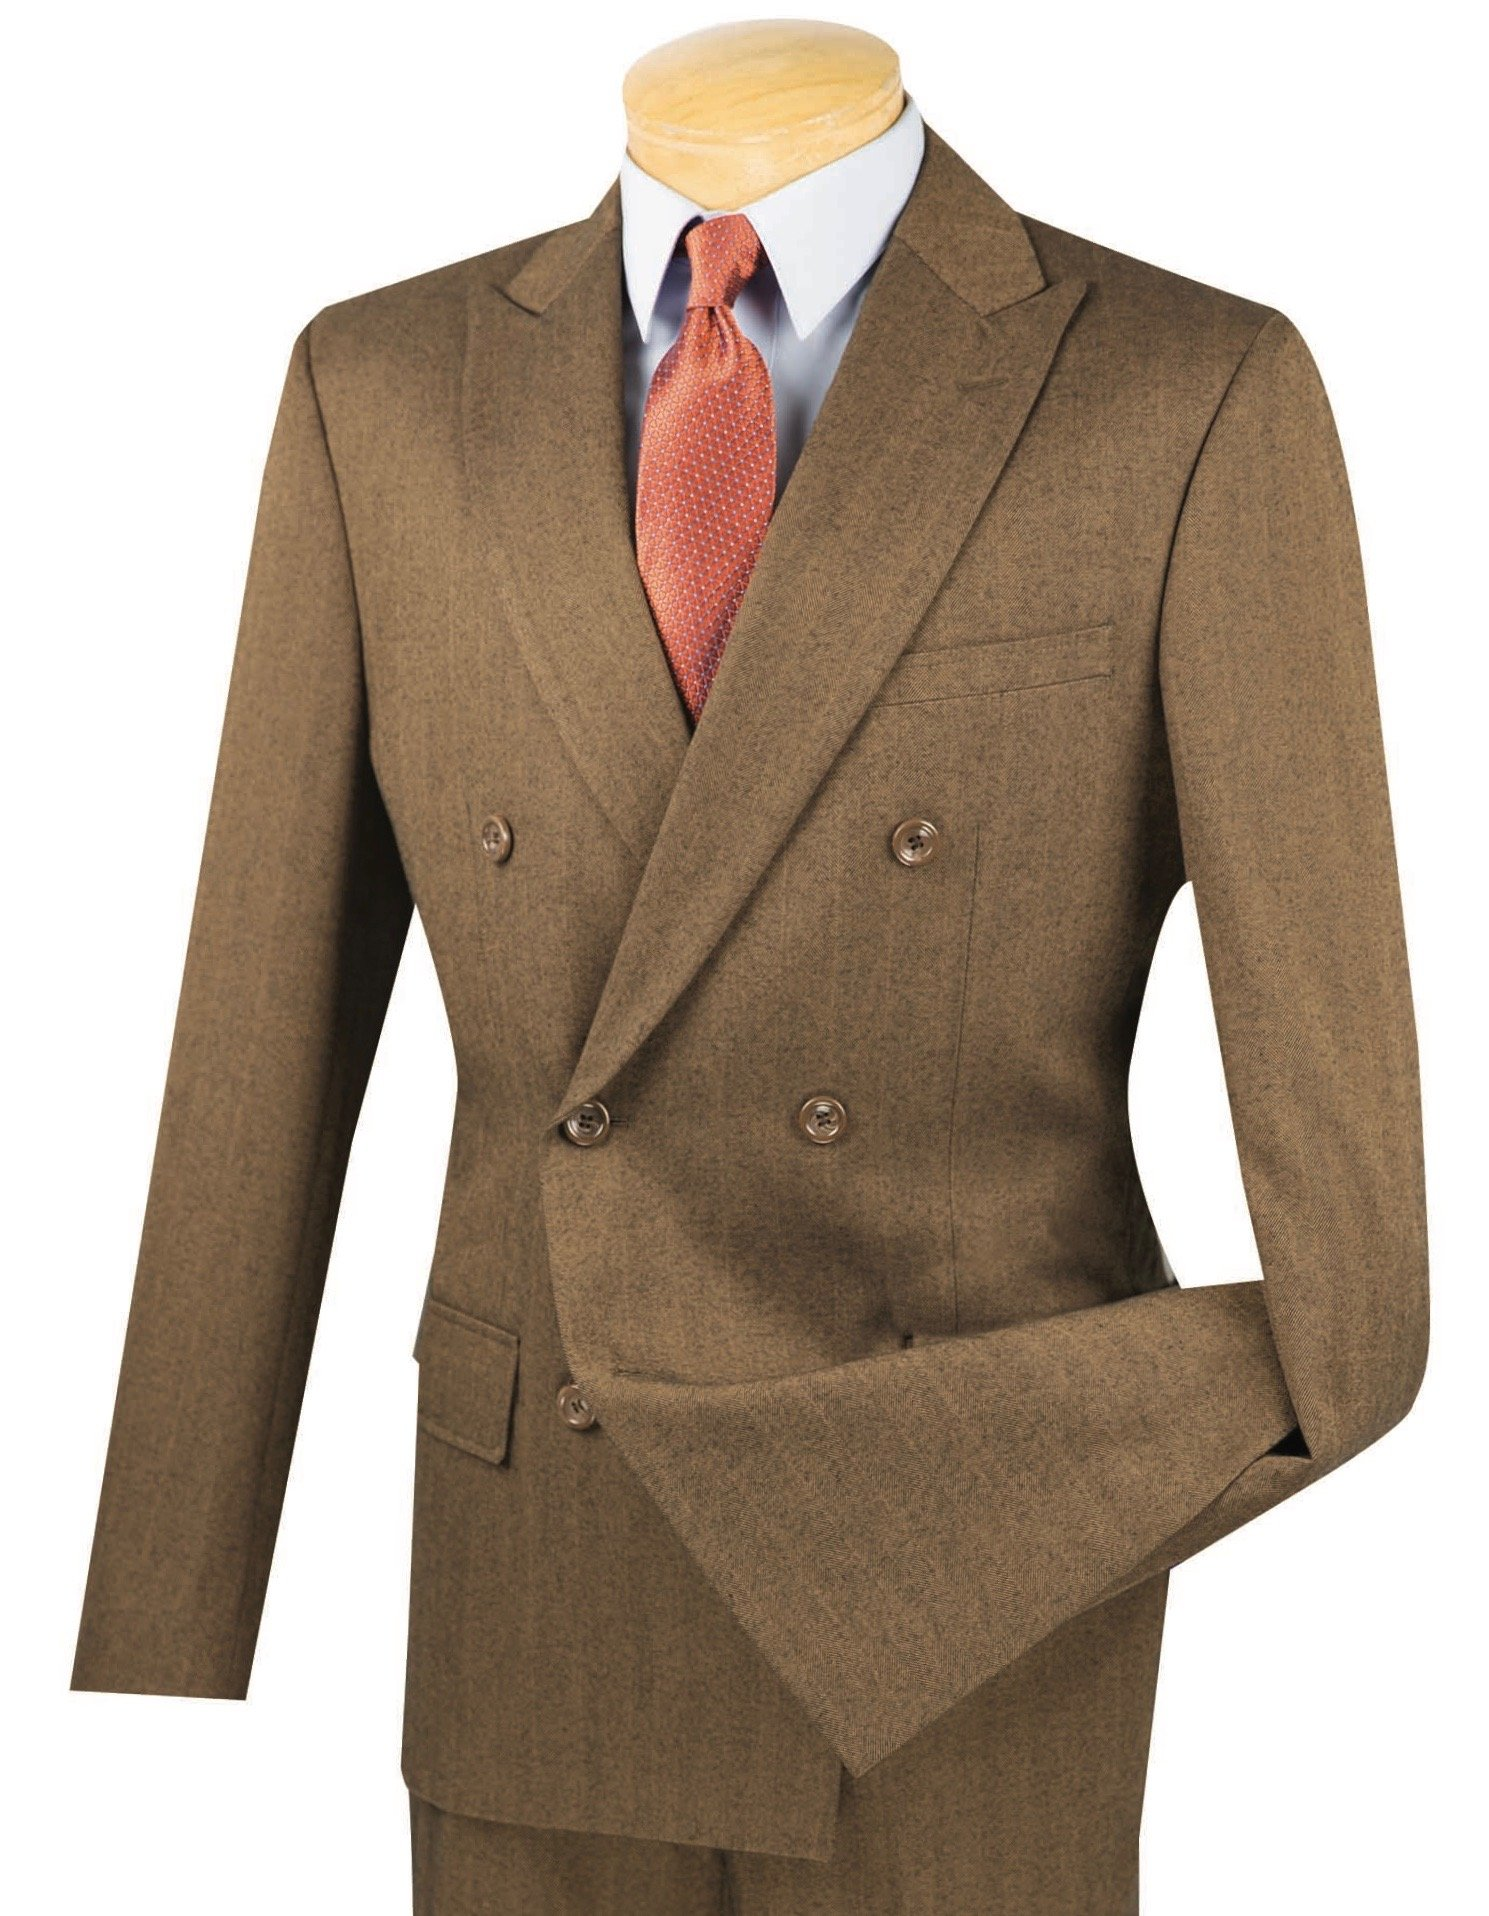 Vinci Men's Brushed Herringbone Striped Double Breasted 6 Button Slim-Fit Flannel Suit NEW [Color: Taupe | Size: 50 Long / 45 Waist]